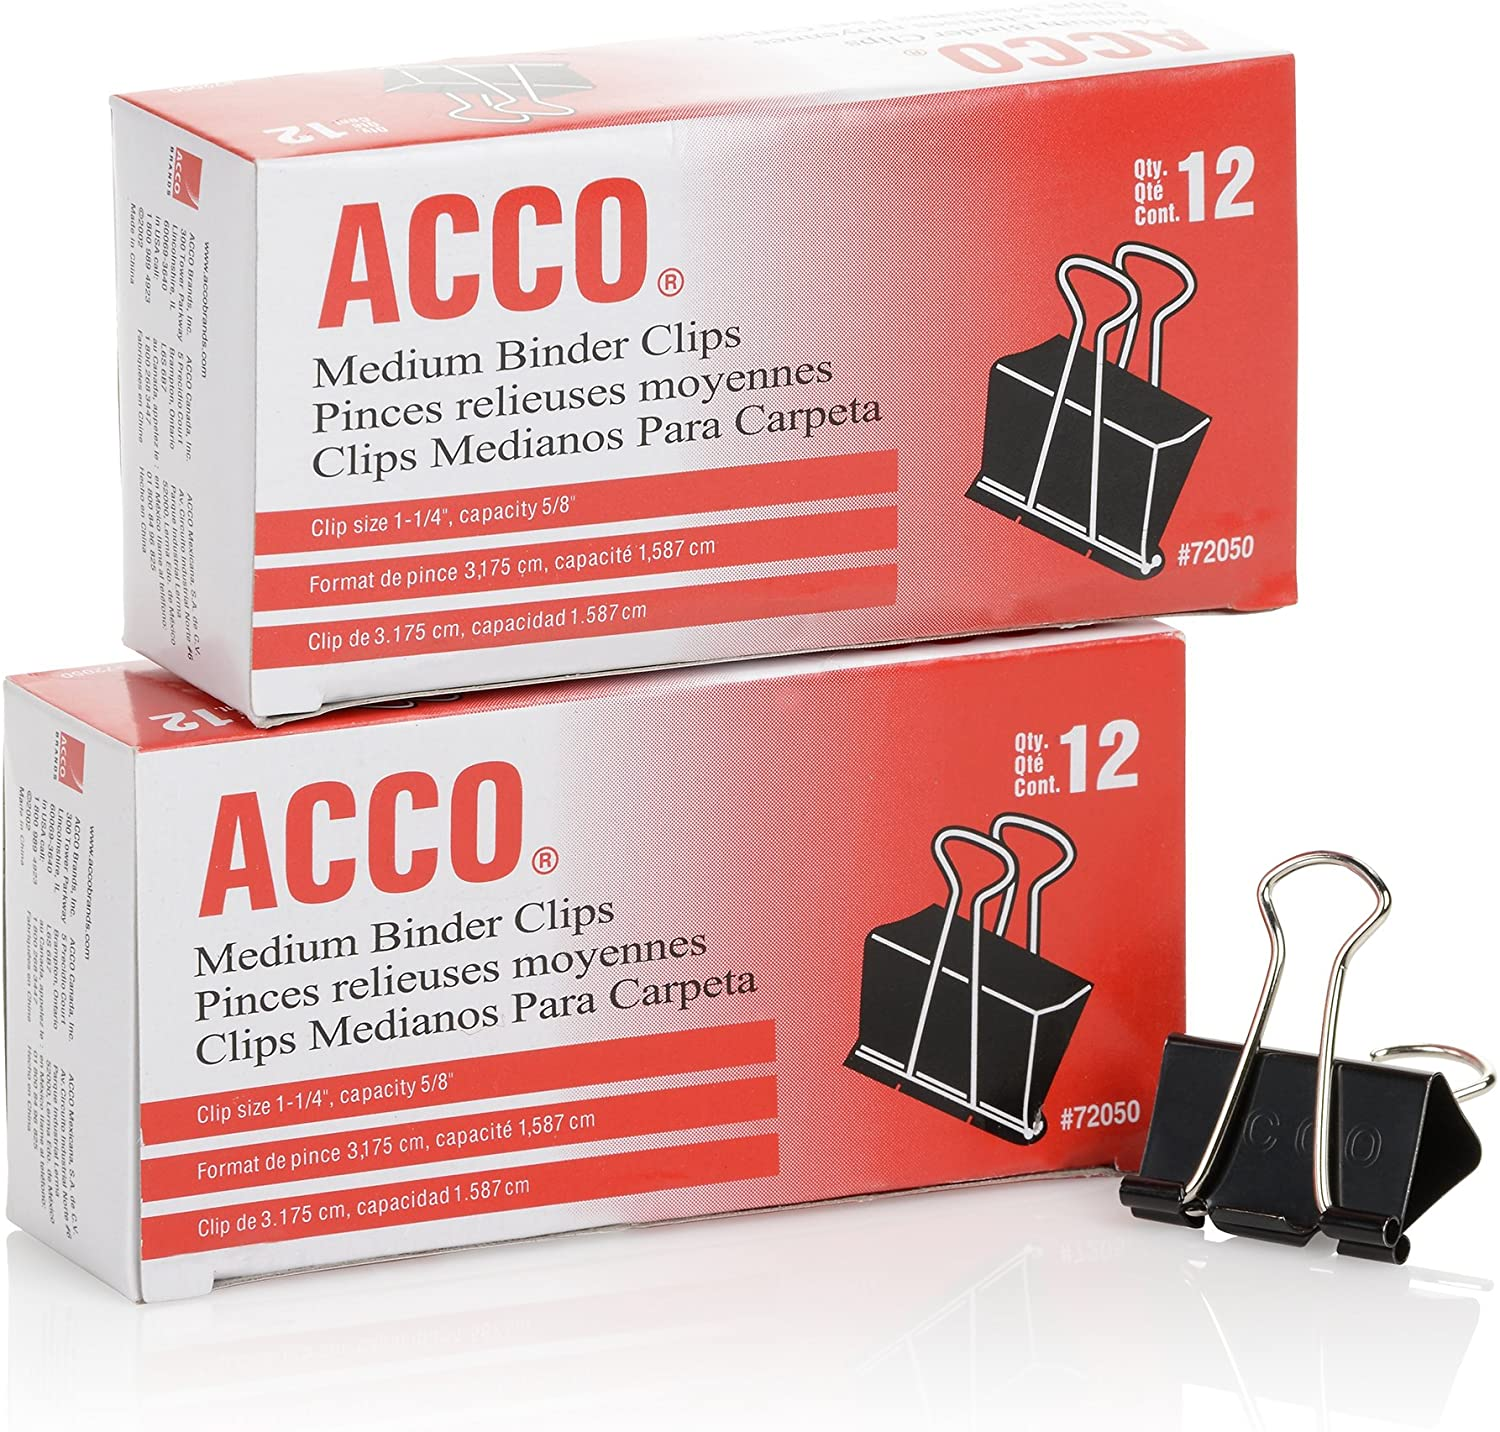 Acco binder clips, two boxes of 12 clips